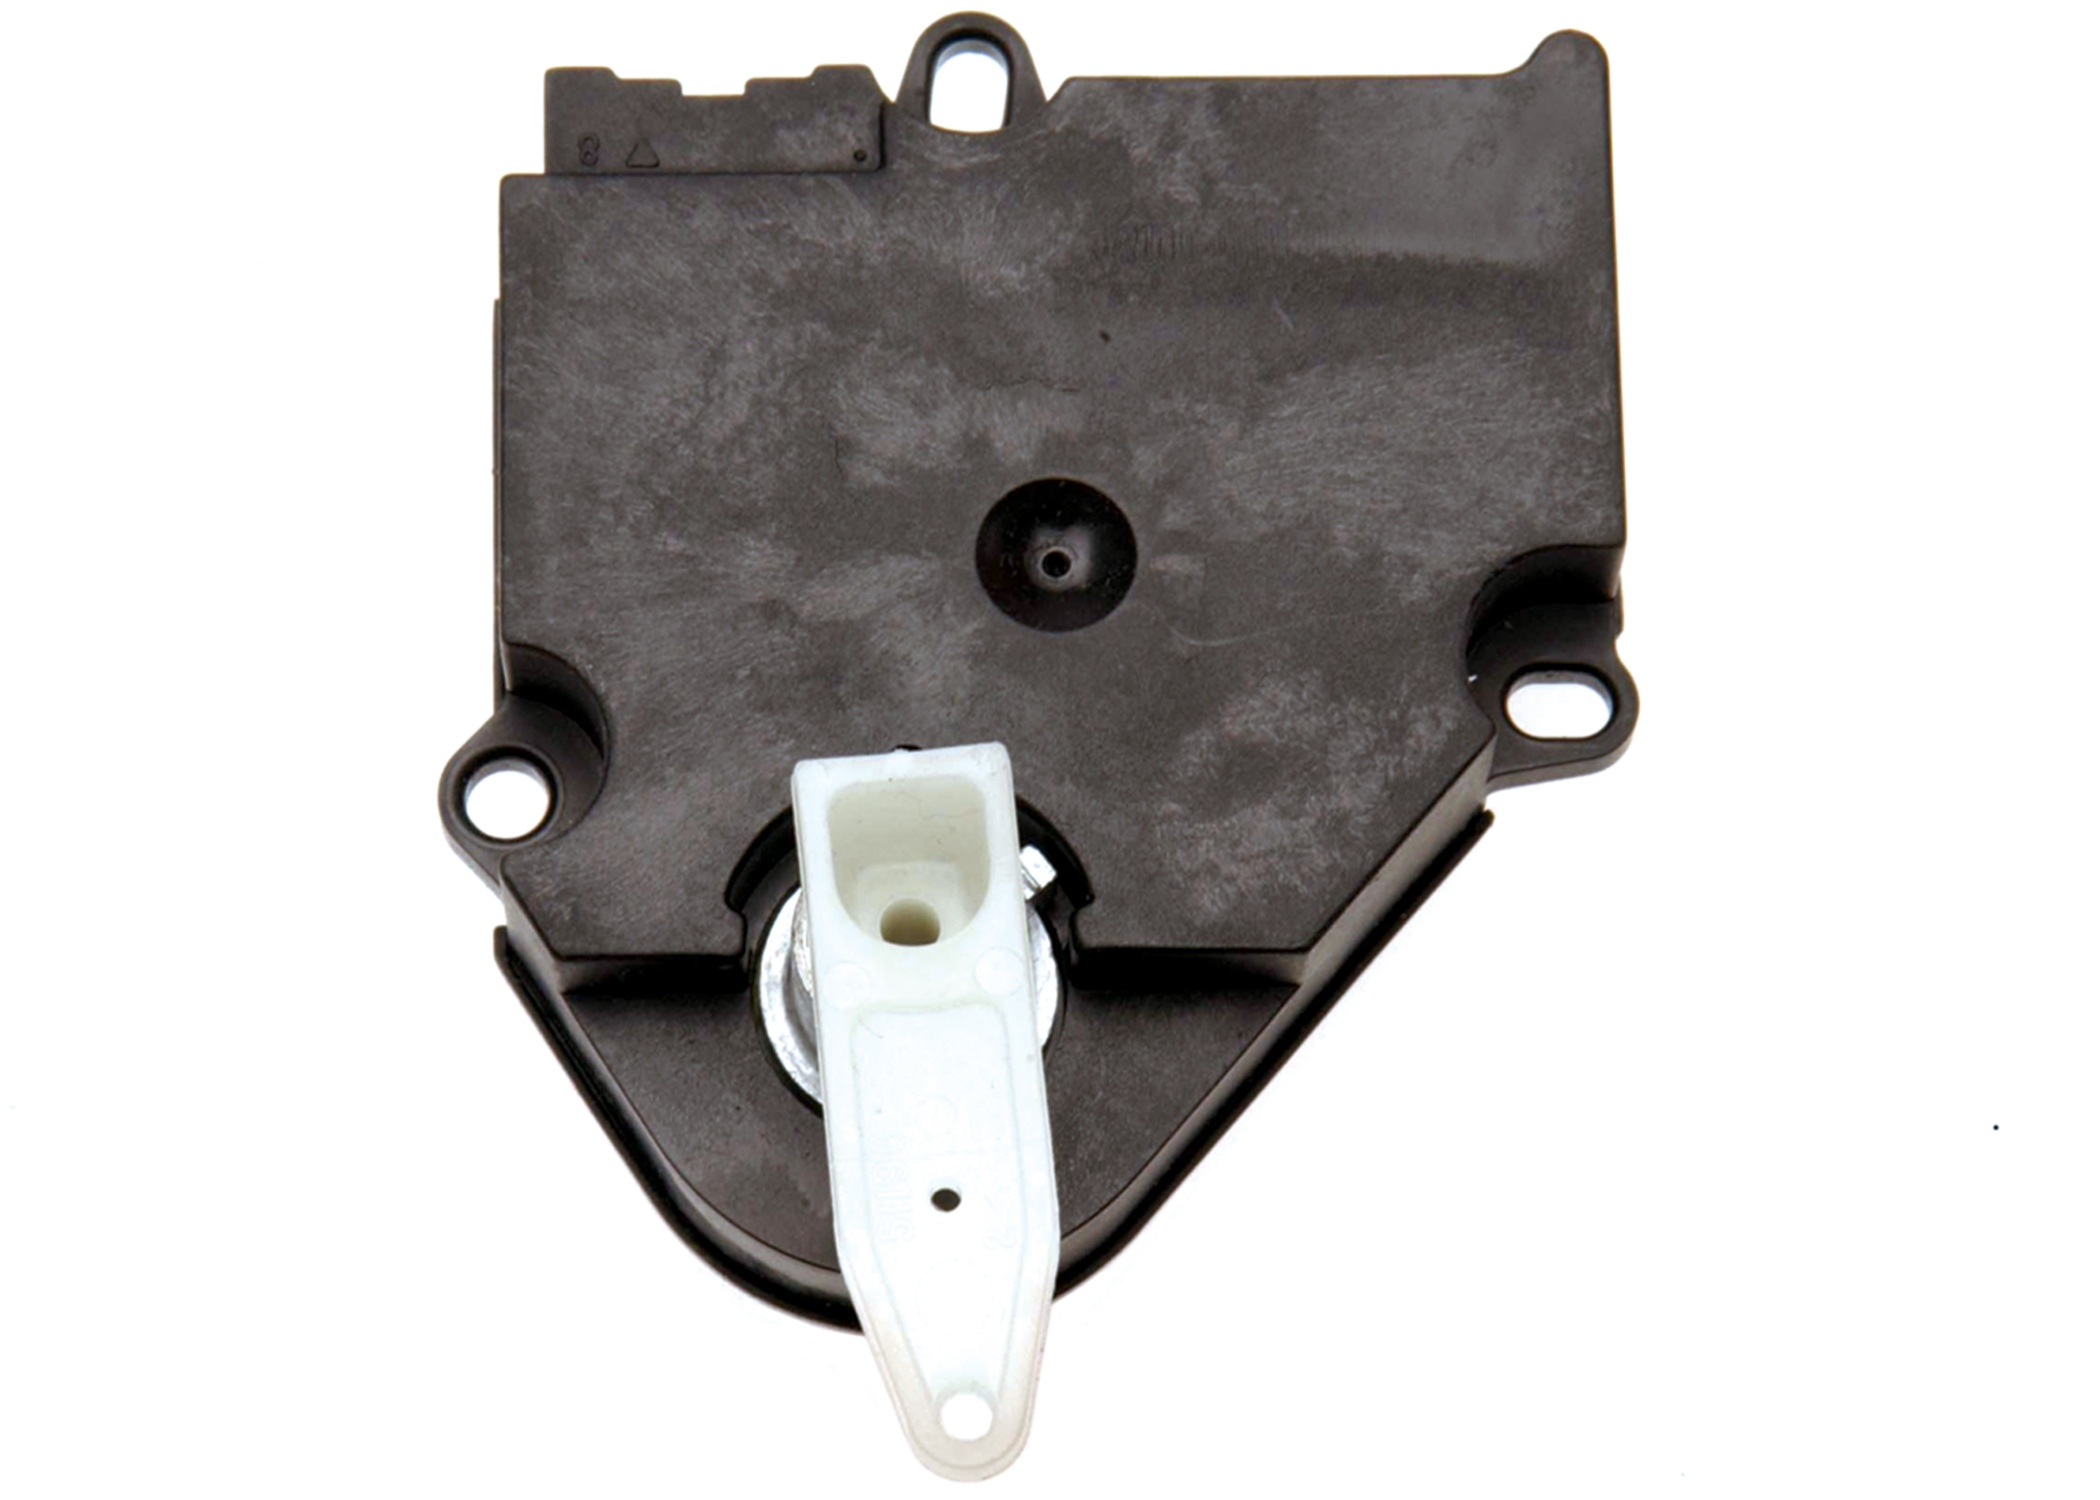 ACDELCO OE SERVICE - HVAC Heater Blend Door Actuator - DCB 15-72650